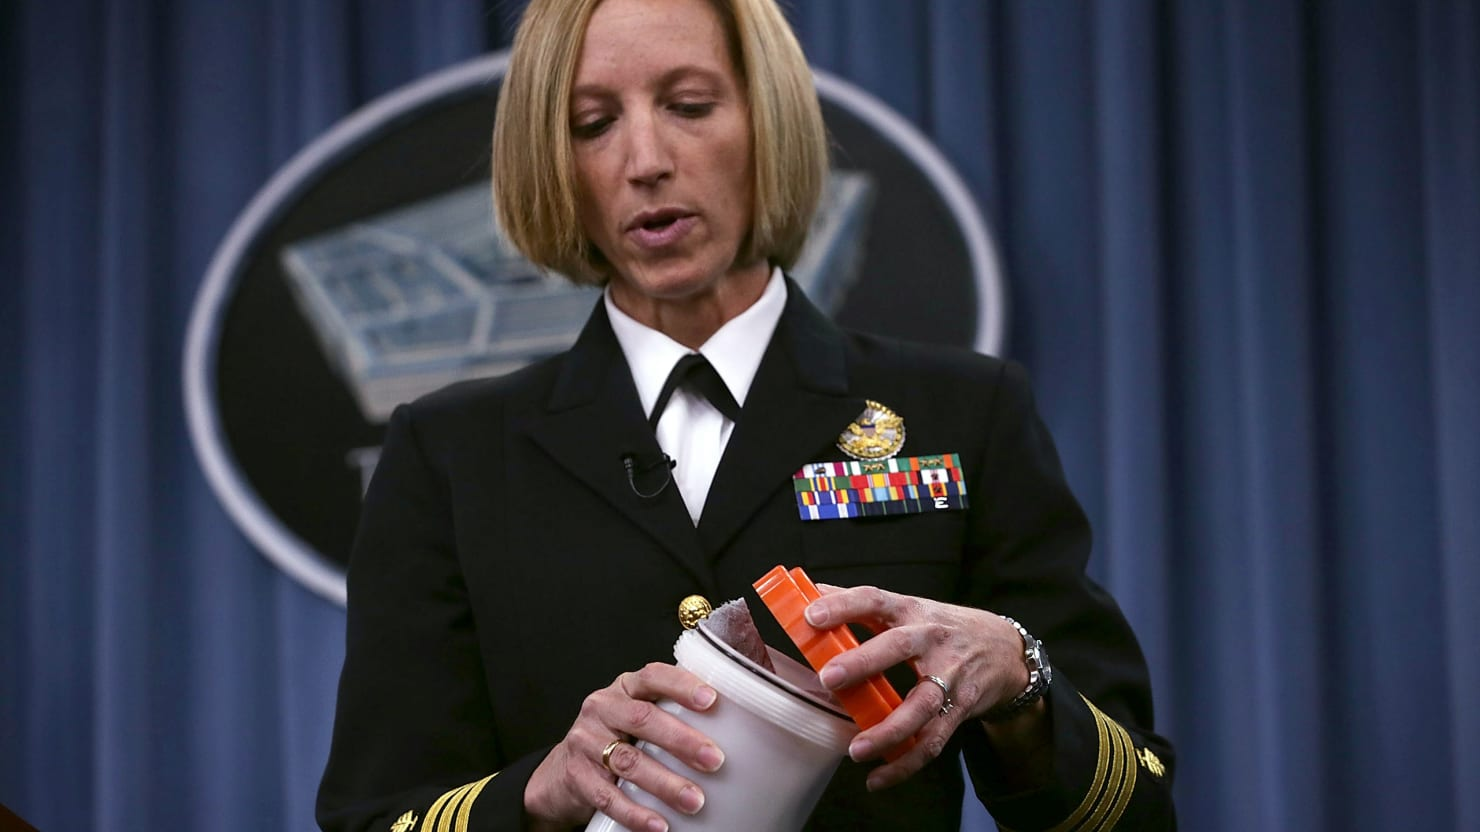 Pentagon 'Shocked' by Anthrax Leak